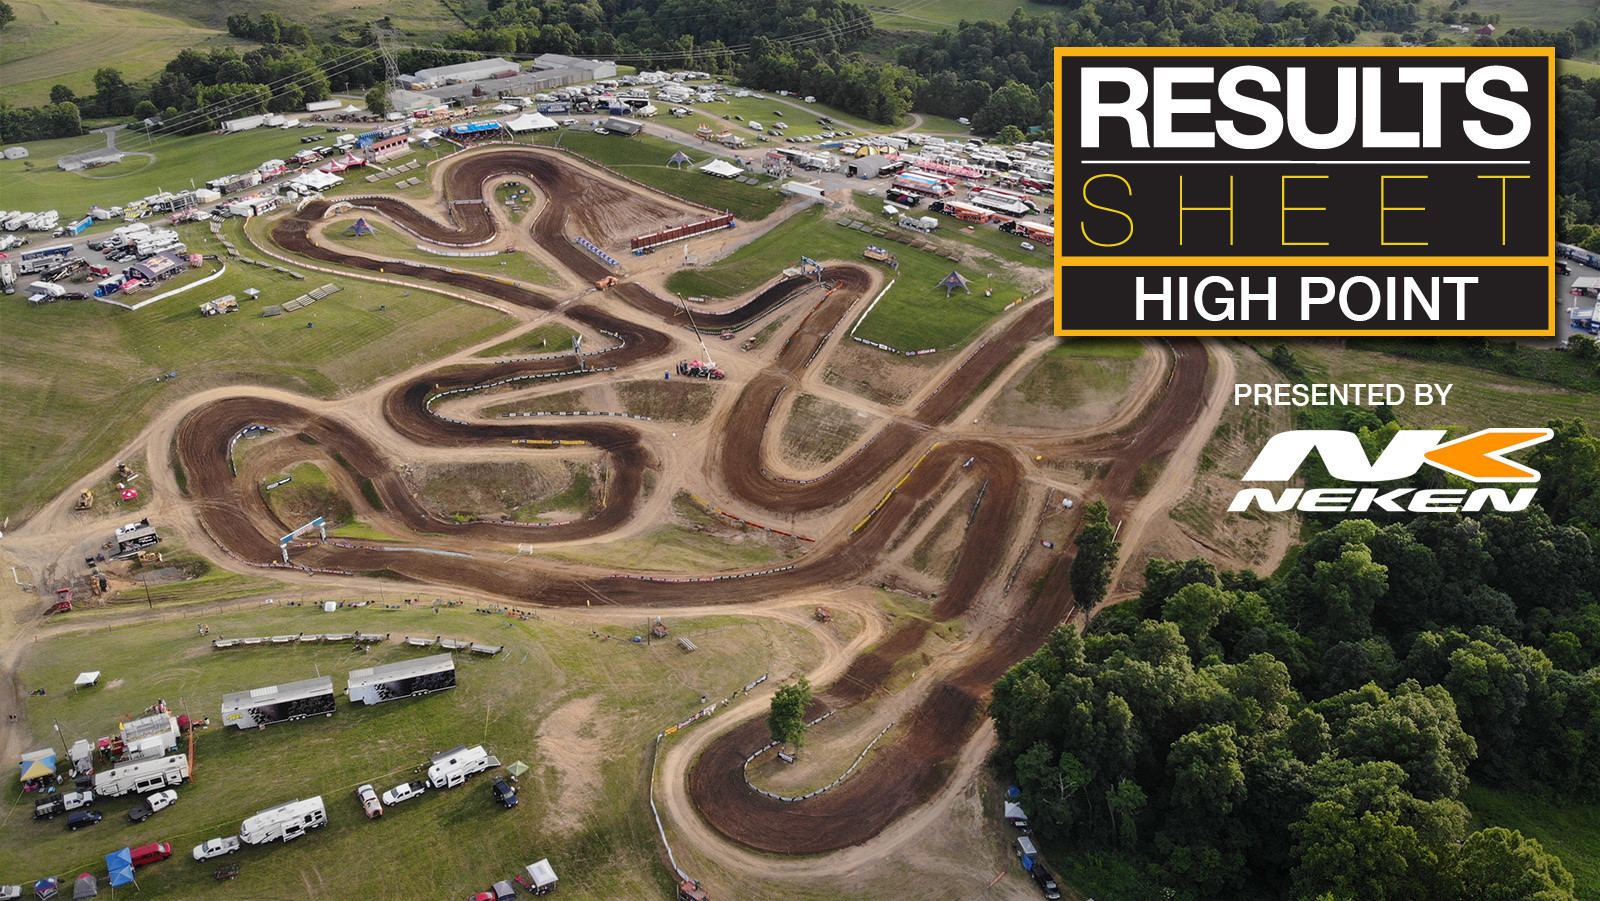 Results Sheet: 2018 High Point Motocross National